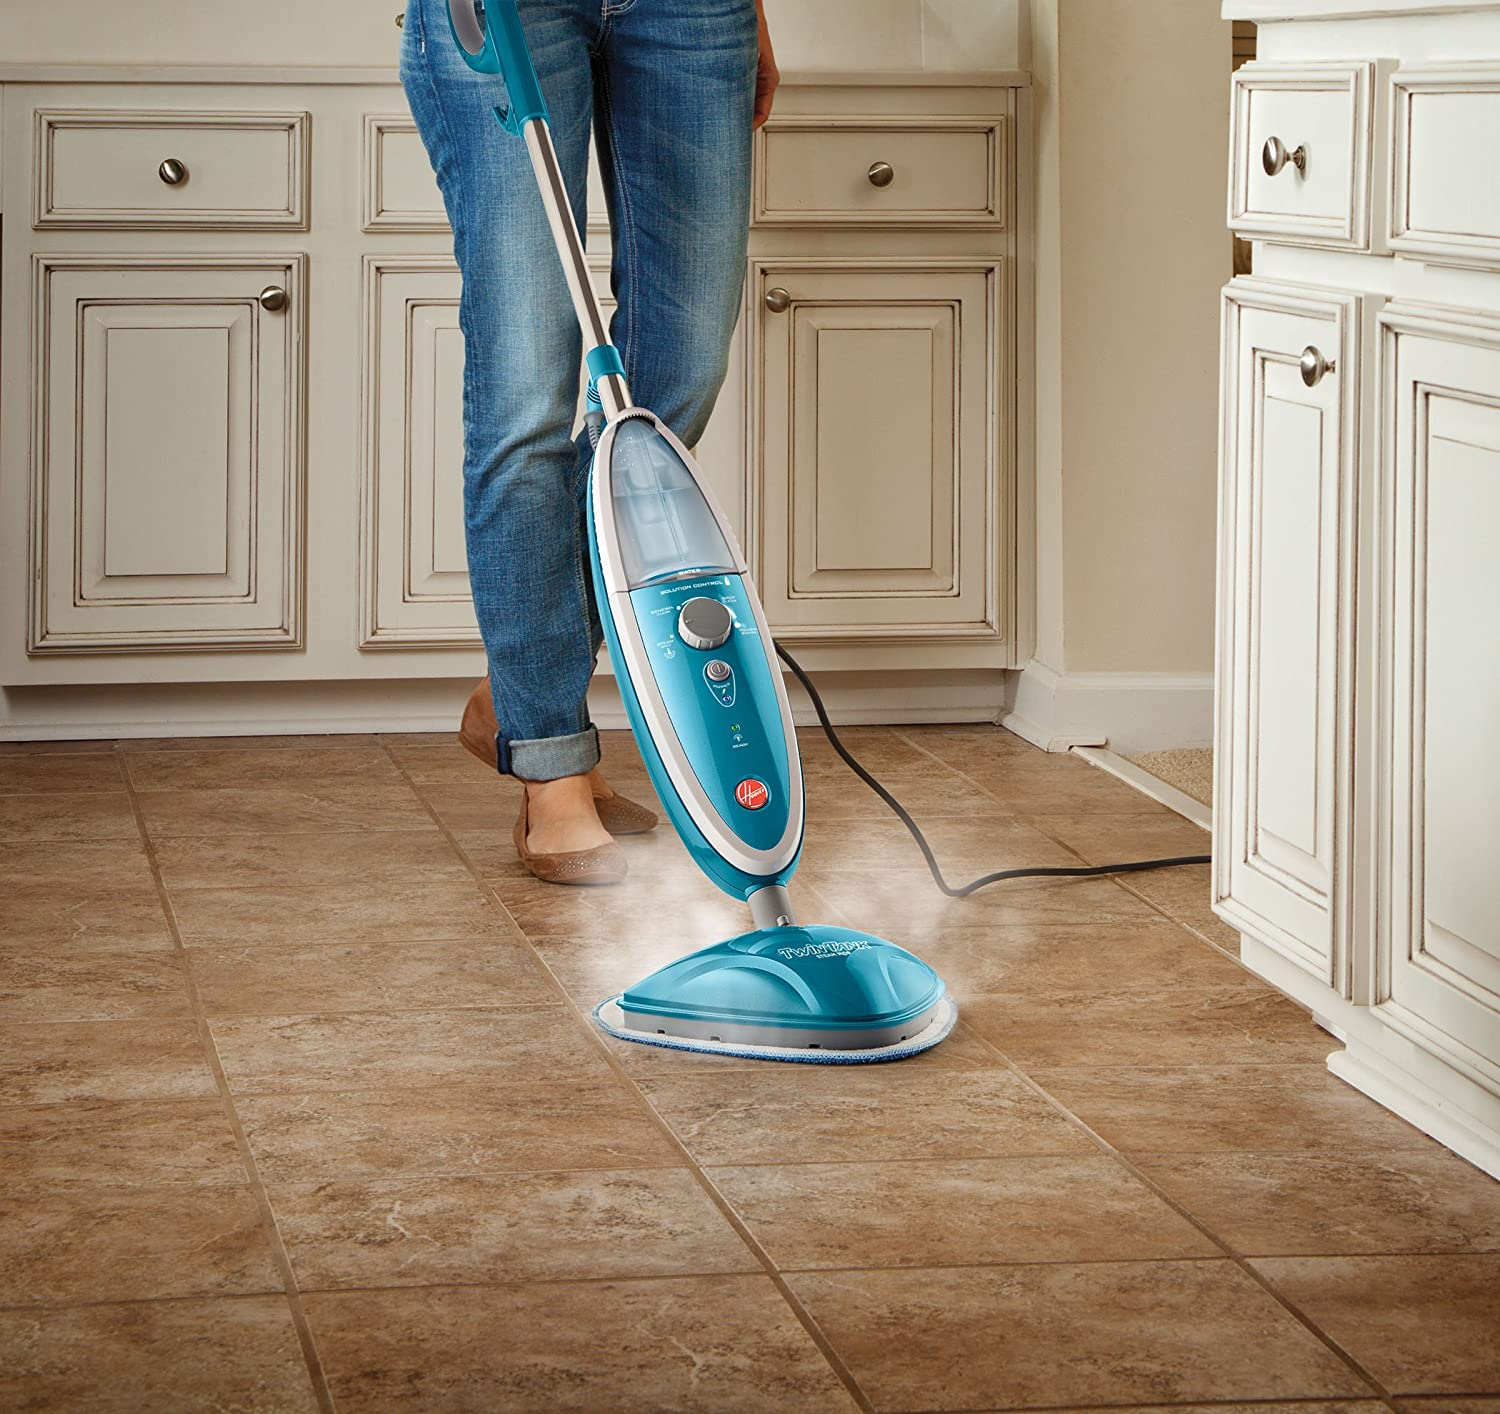 Amazoncom Hoover Steam Mop TwinTank Steam Cleaner WH20200 Home